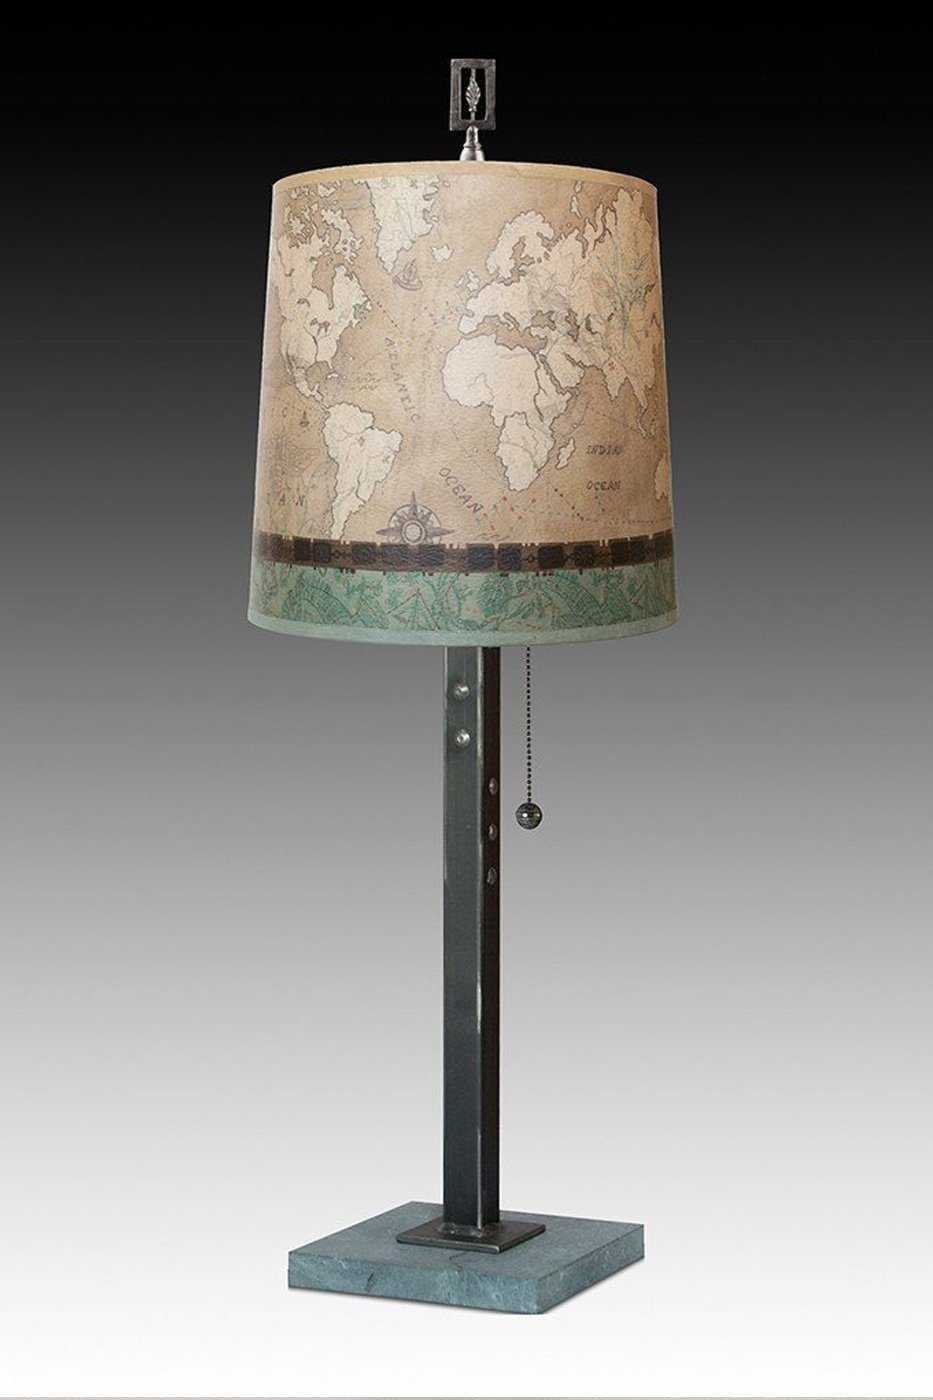 Steel Table Lamp on Marble with Medium Drum Shade in Sand Map